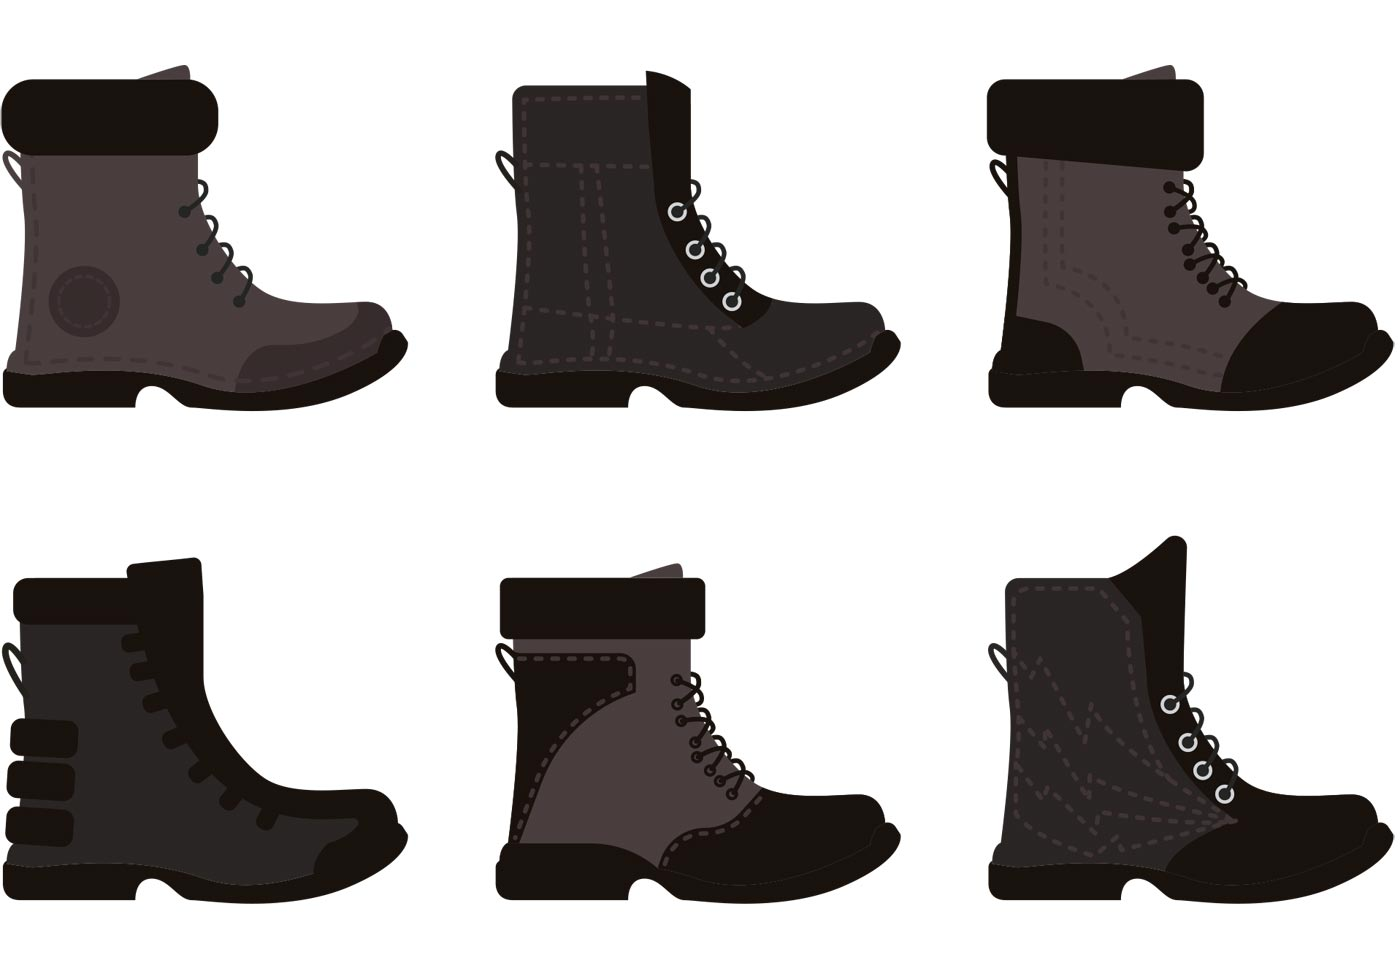 Boots Free Vector Art - (2394 Free Downloads)